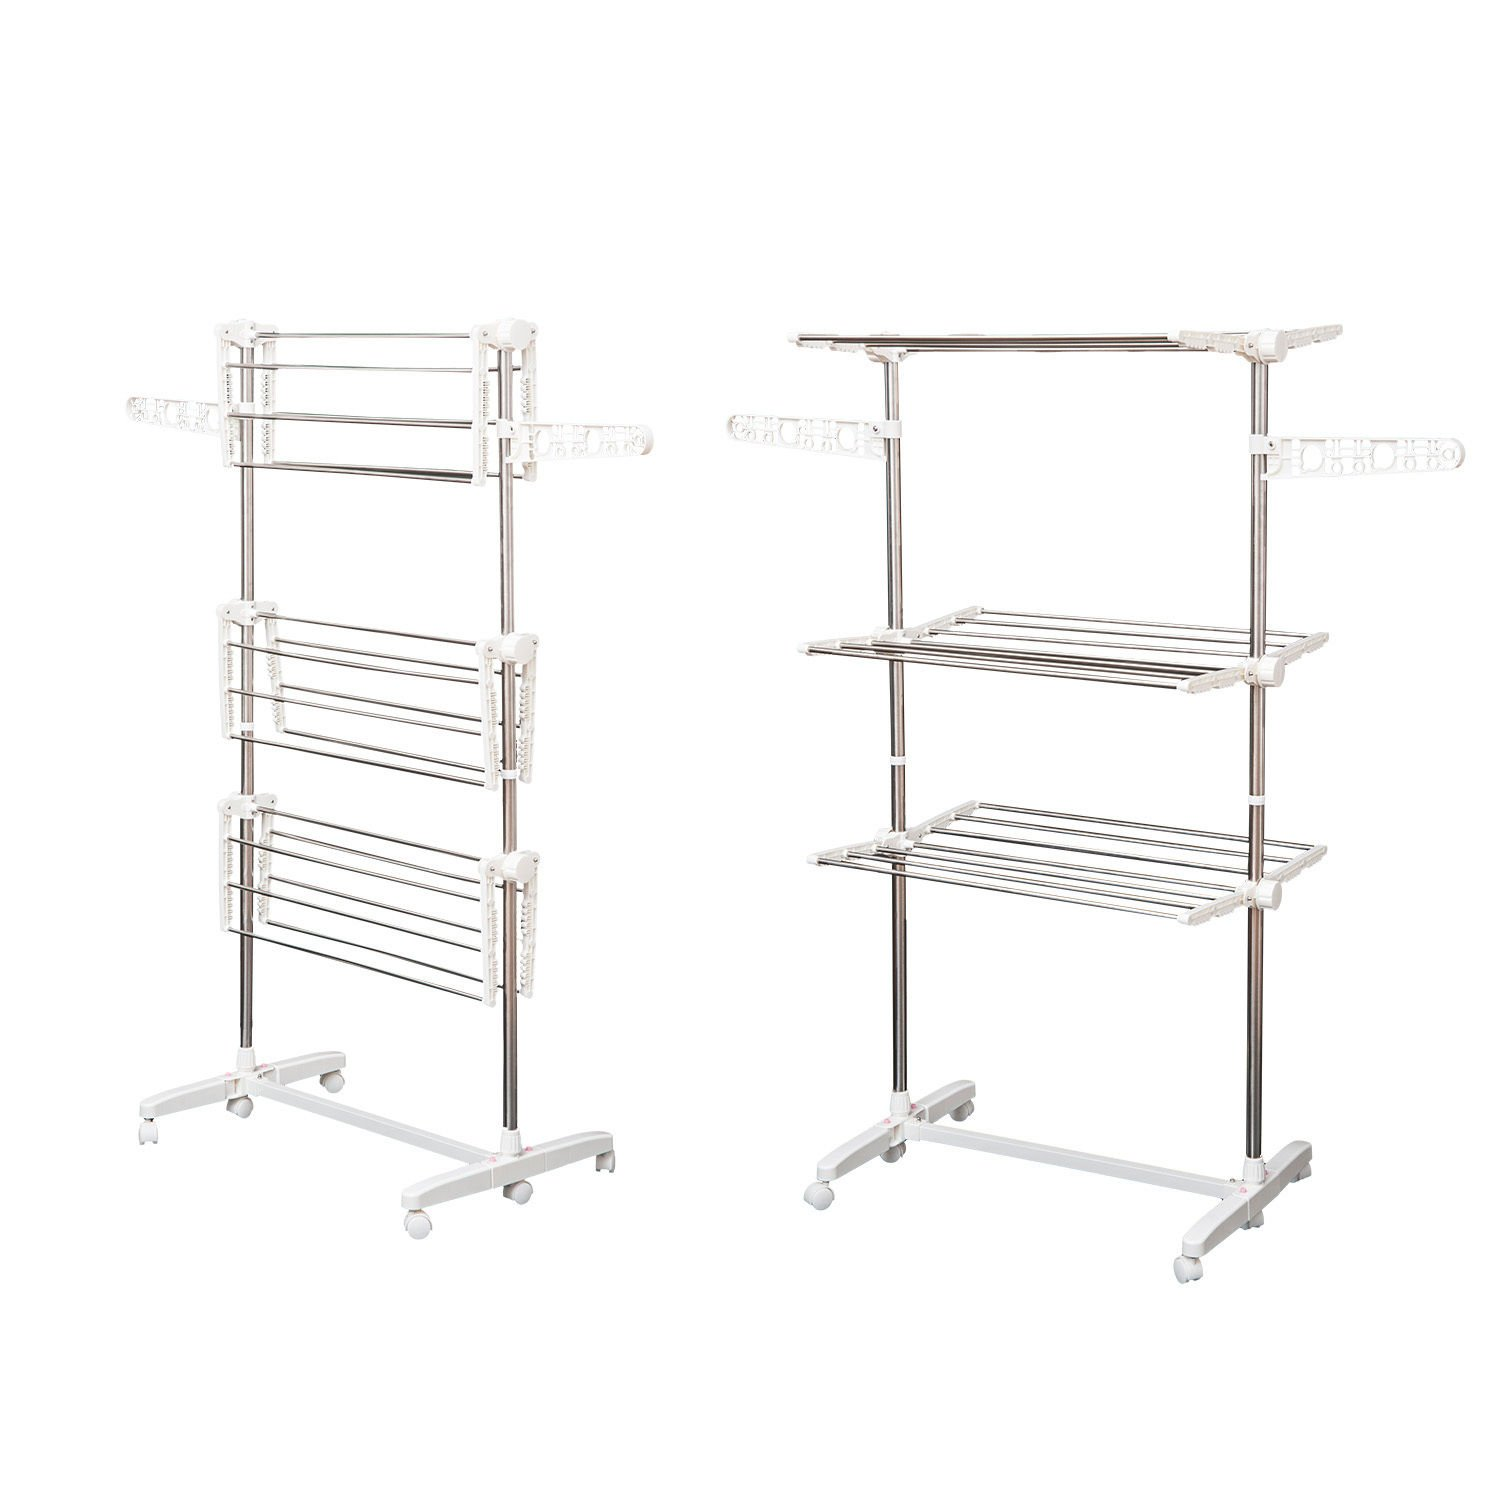 Homcom Folding Cloth Rail Adjustable Garment Rack With Wheels (3